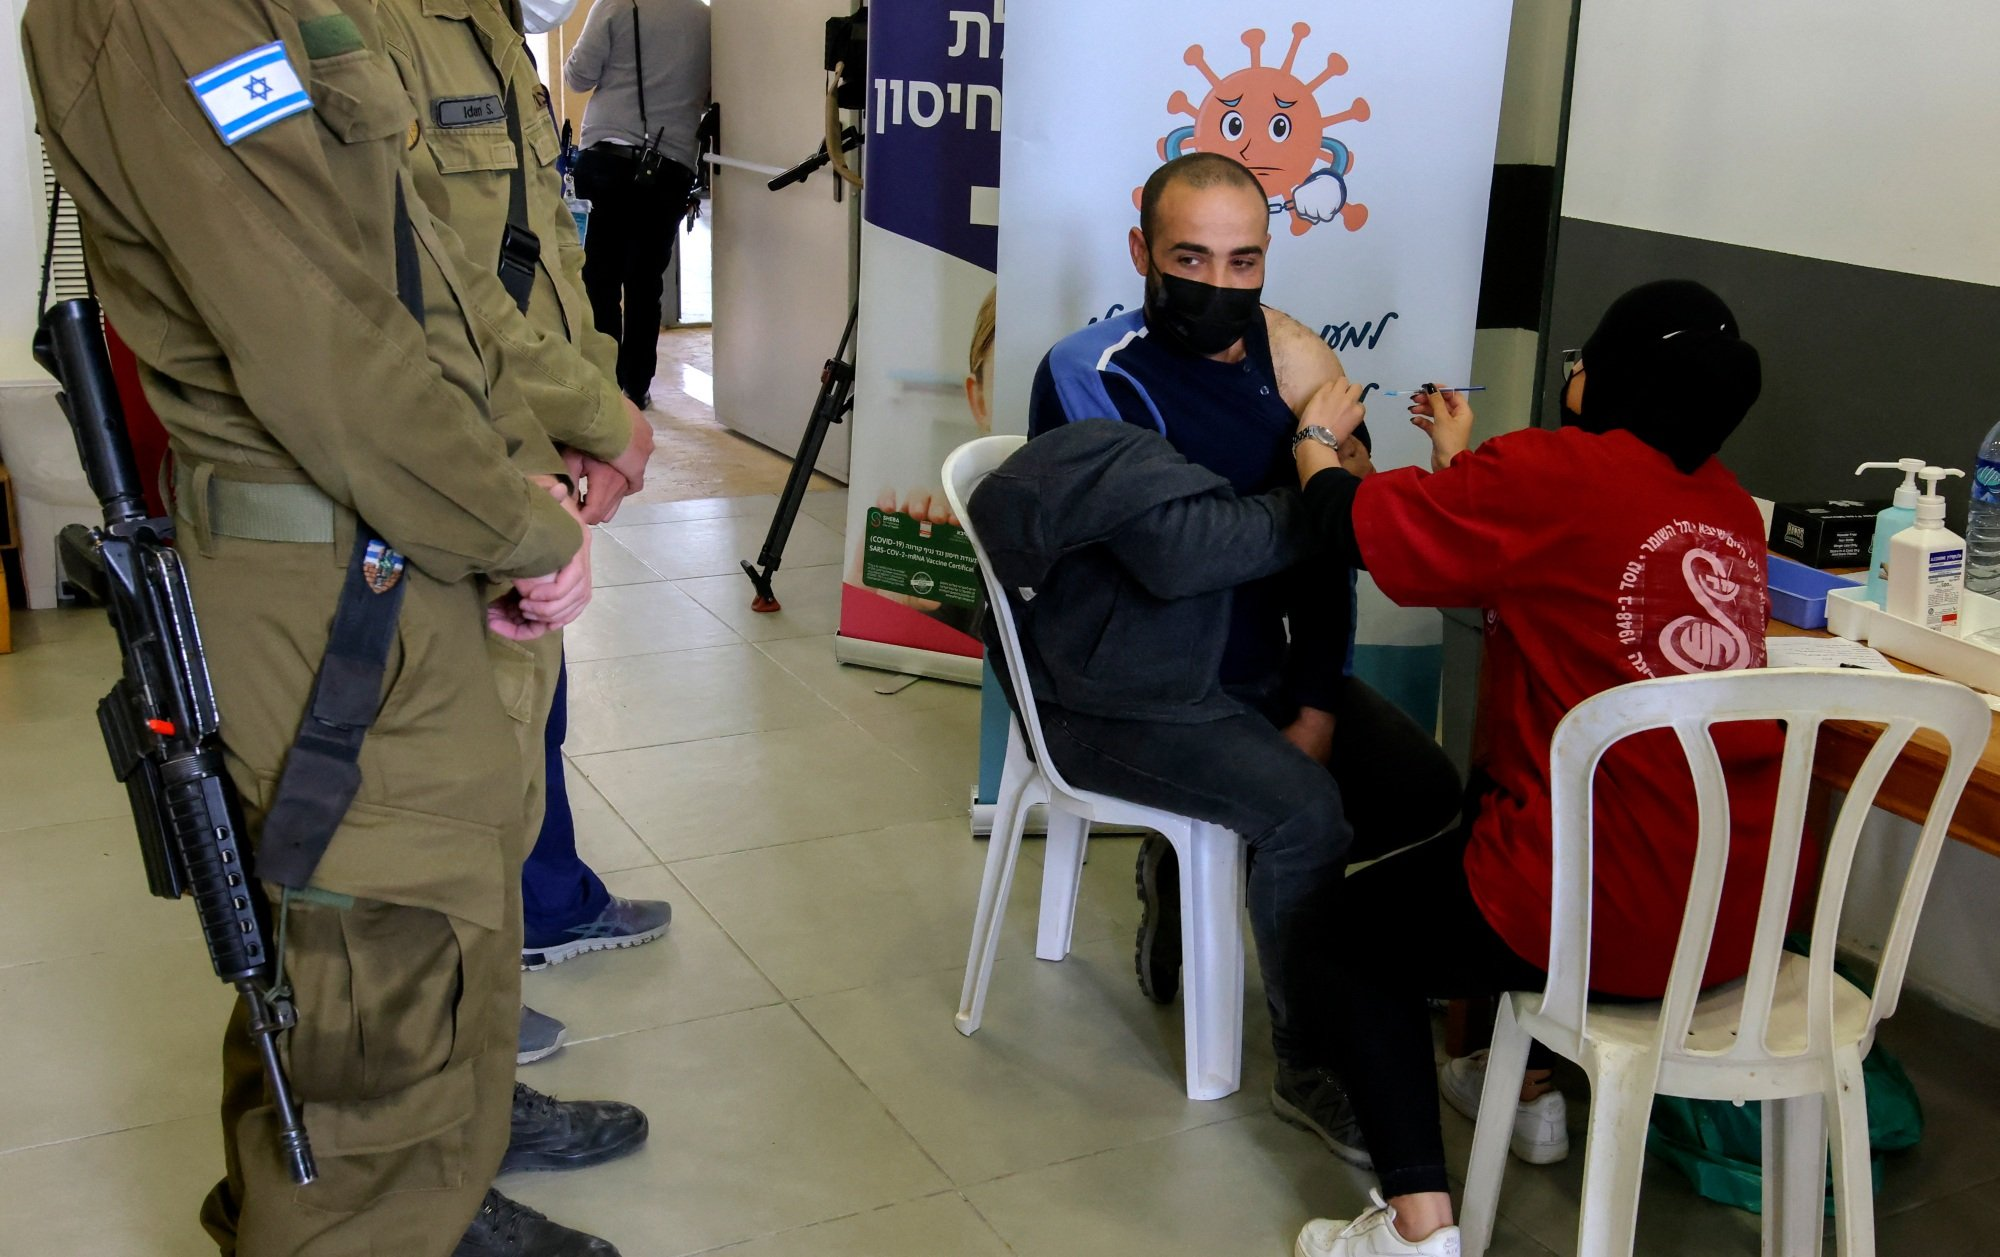 An Israeli paramedic administers the Covid-19 vaccine to a Palestinian working in Israel at the Shaar Ephraim checkpoint between Israel and the occupied West Bank near Tulkarem on 8 March 2021 (AFP)